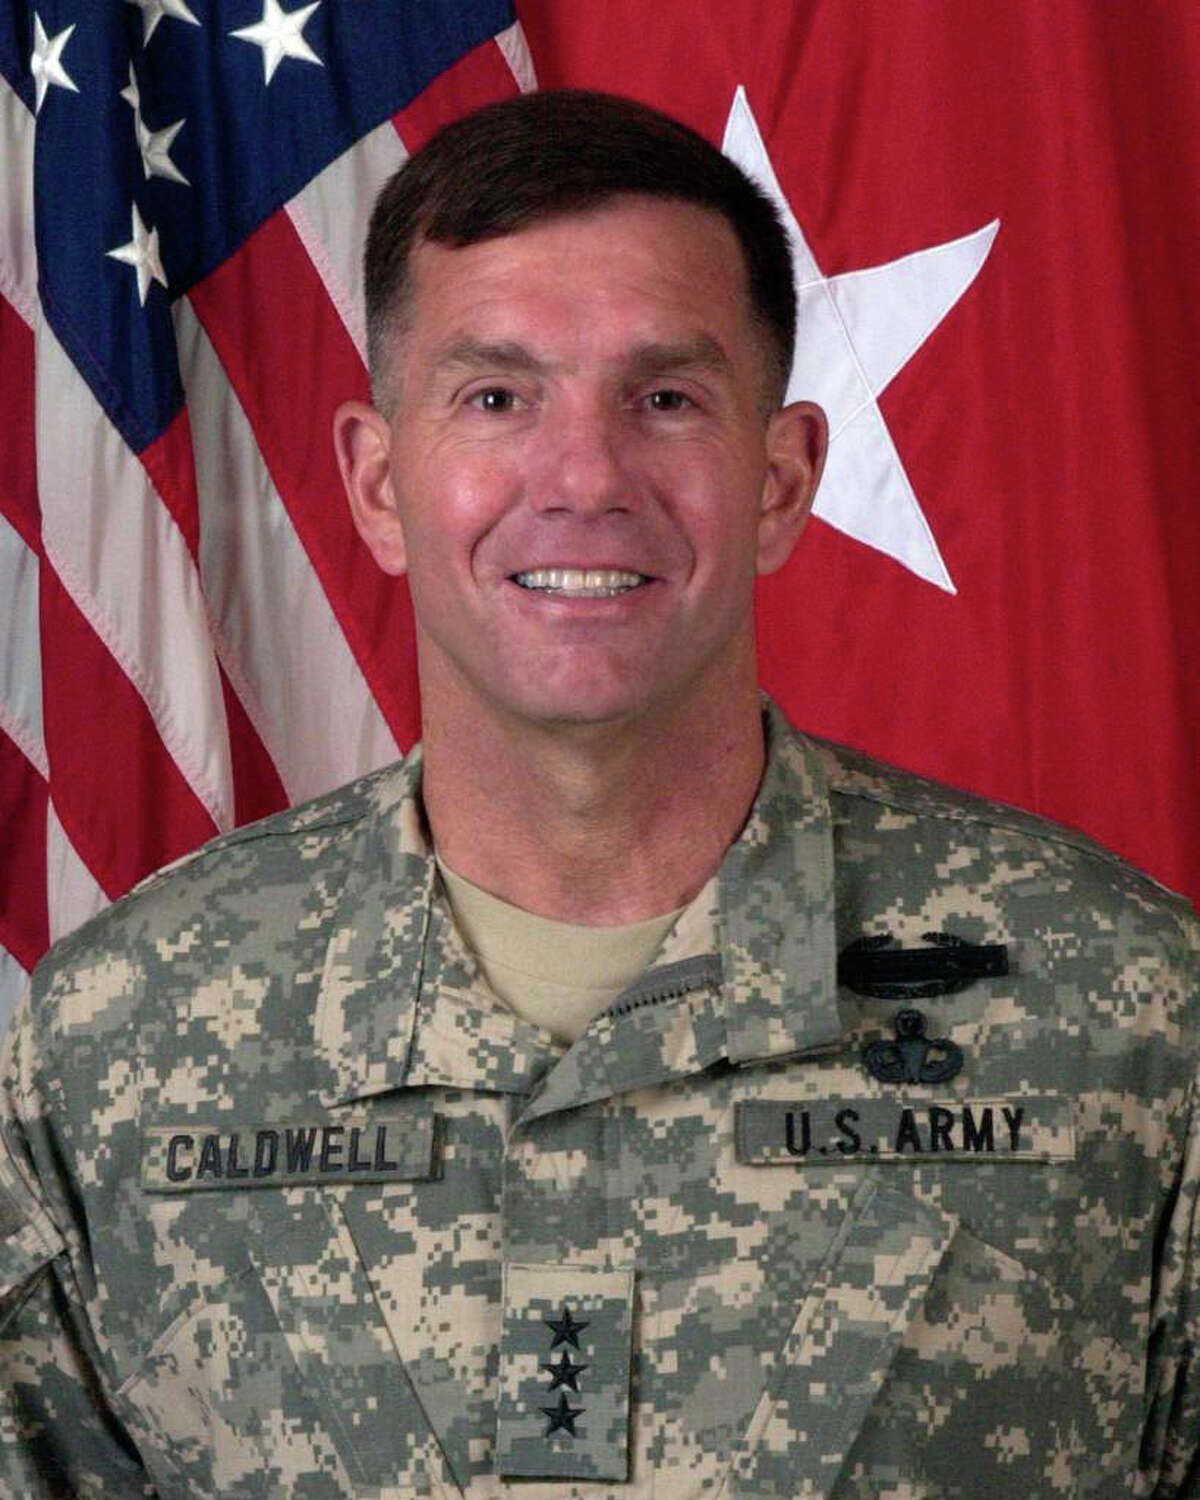 Lt. Gen. William Caldwell IV is the former commanding general of U.S. Army North (5th Army) and senior commander of Fort Sam Houston.